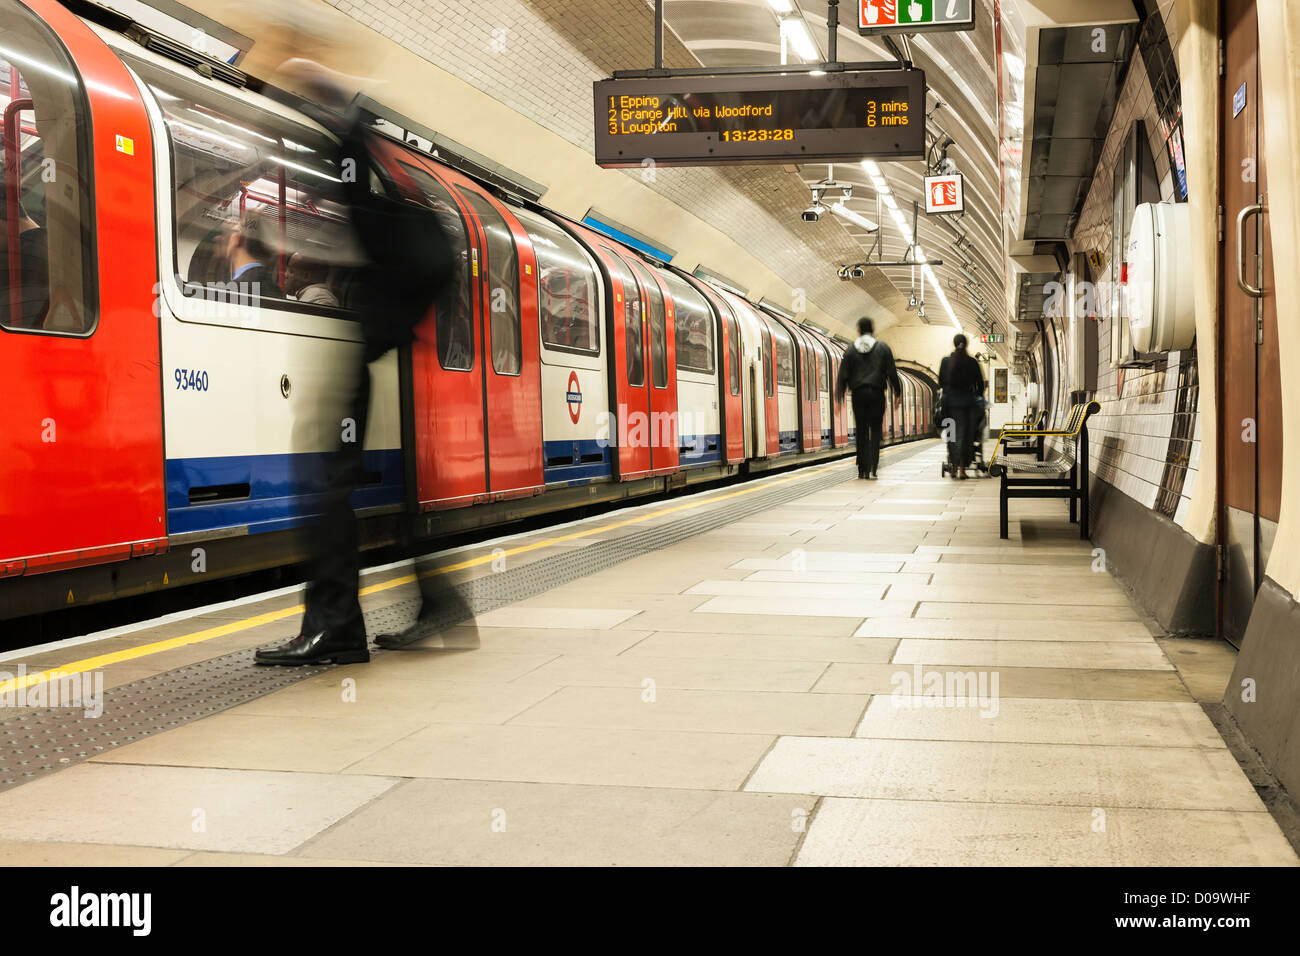 La station de métro de Londres Photo Stock